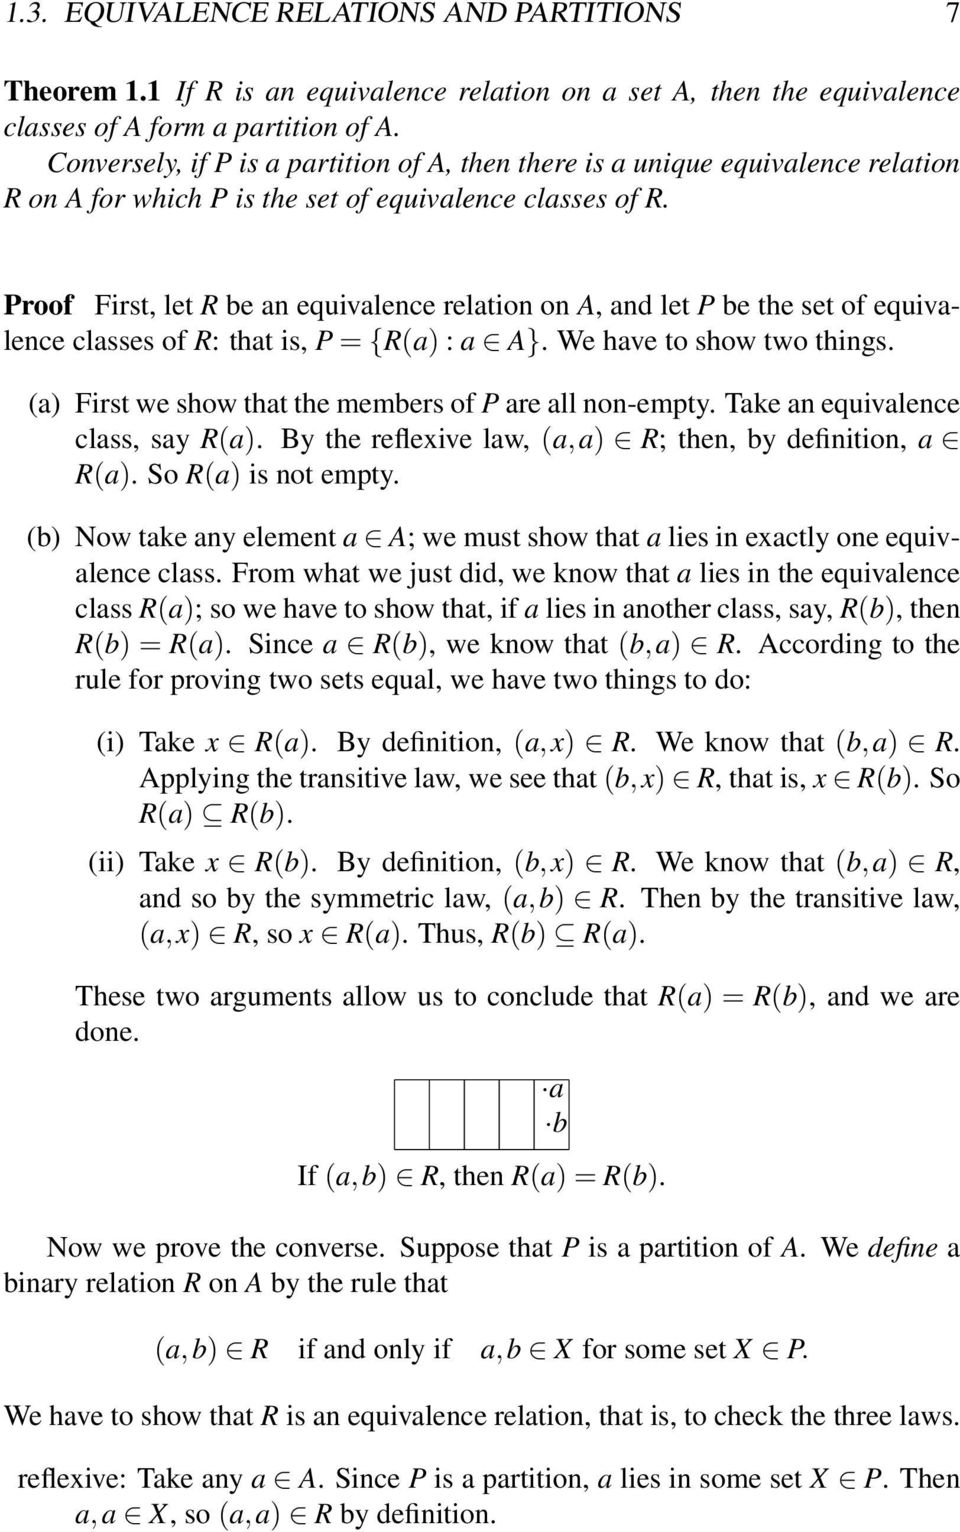 Proof First, let R be an equivalence relation on A, and let P be the set of equivalence classes of R: that is, P = {R(a) : a A}. We have to show two things.